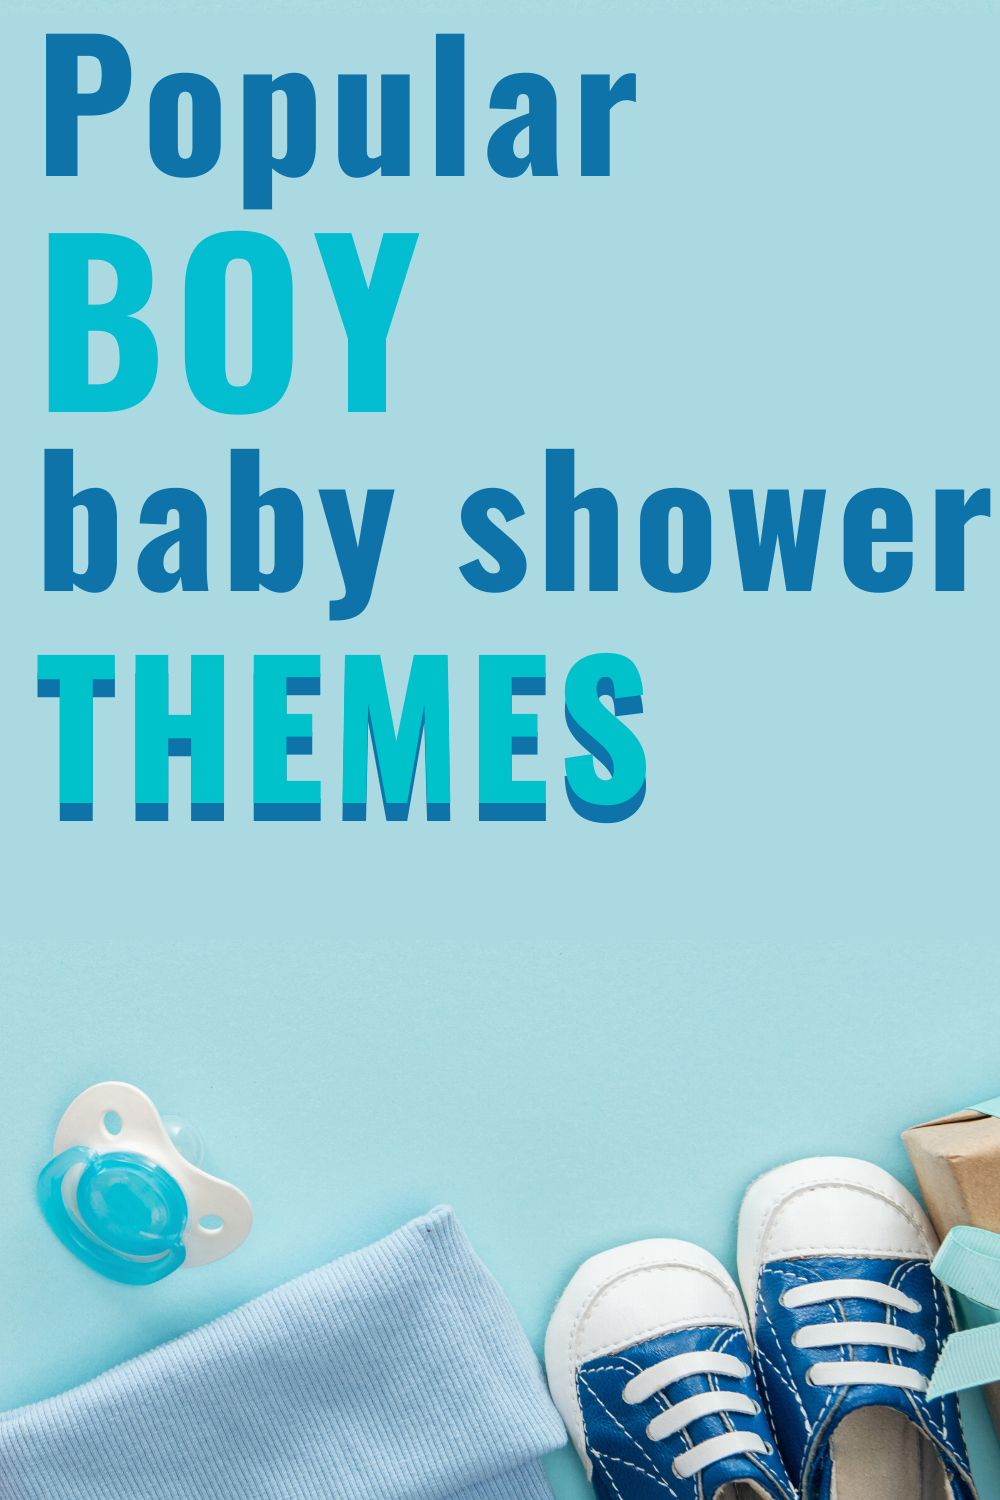 Popular Baby Shower Themes for boys